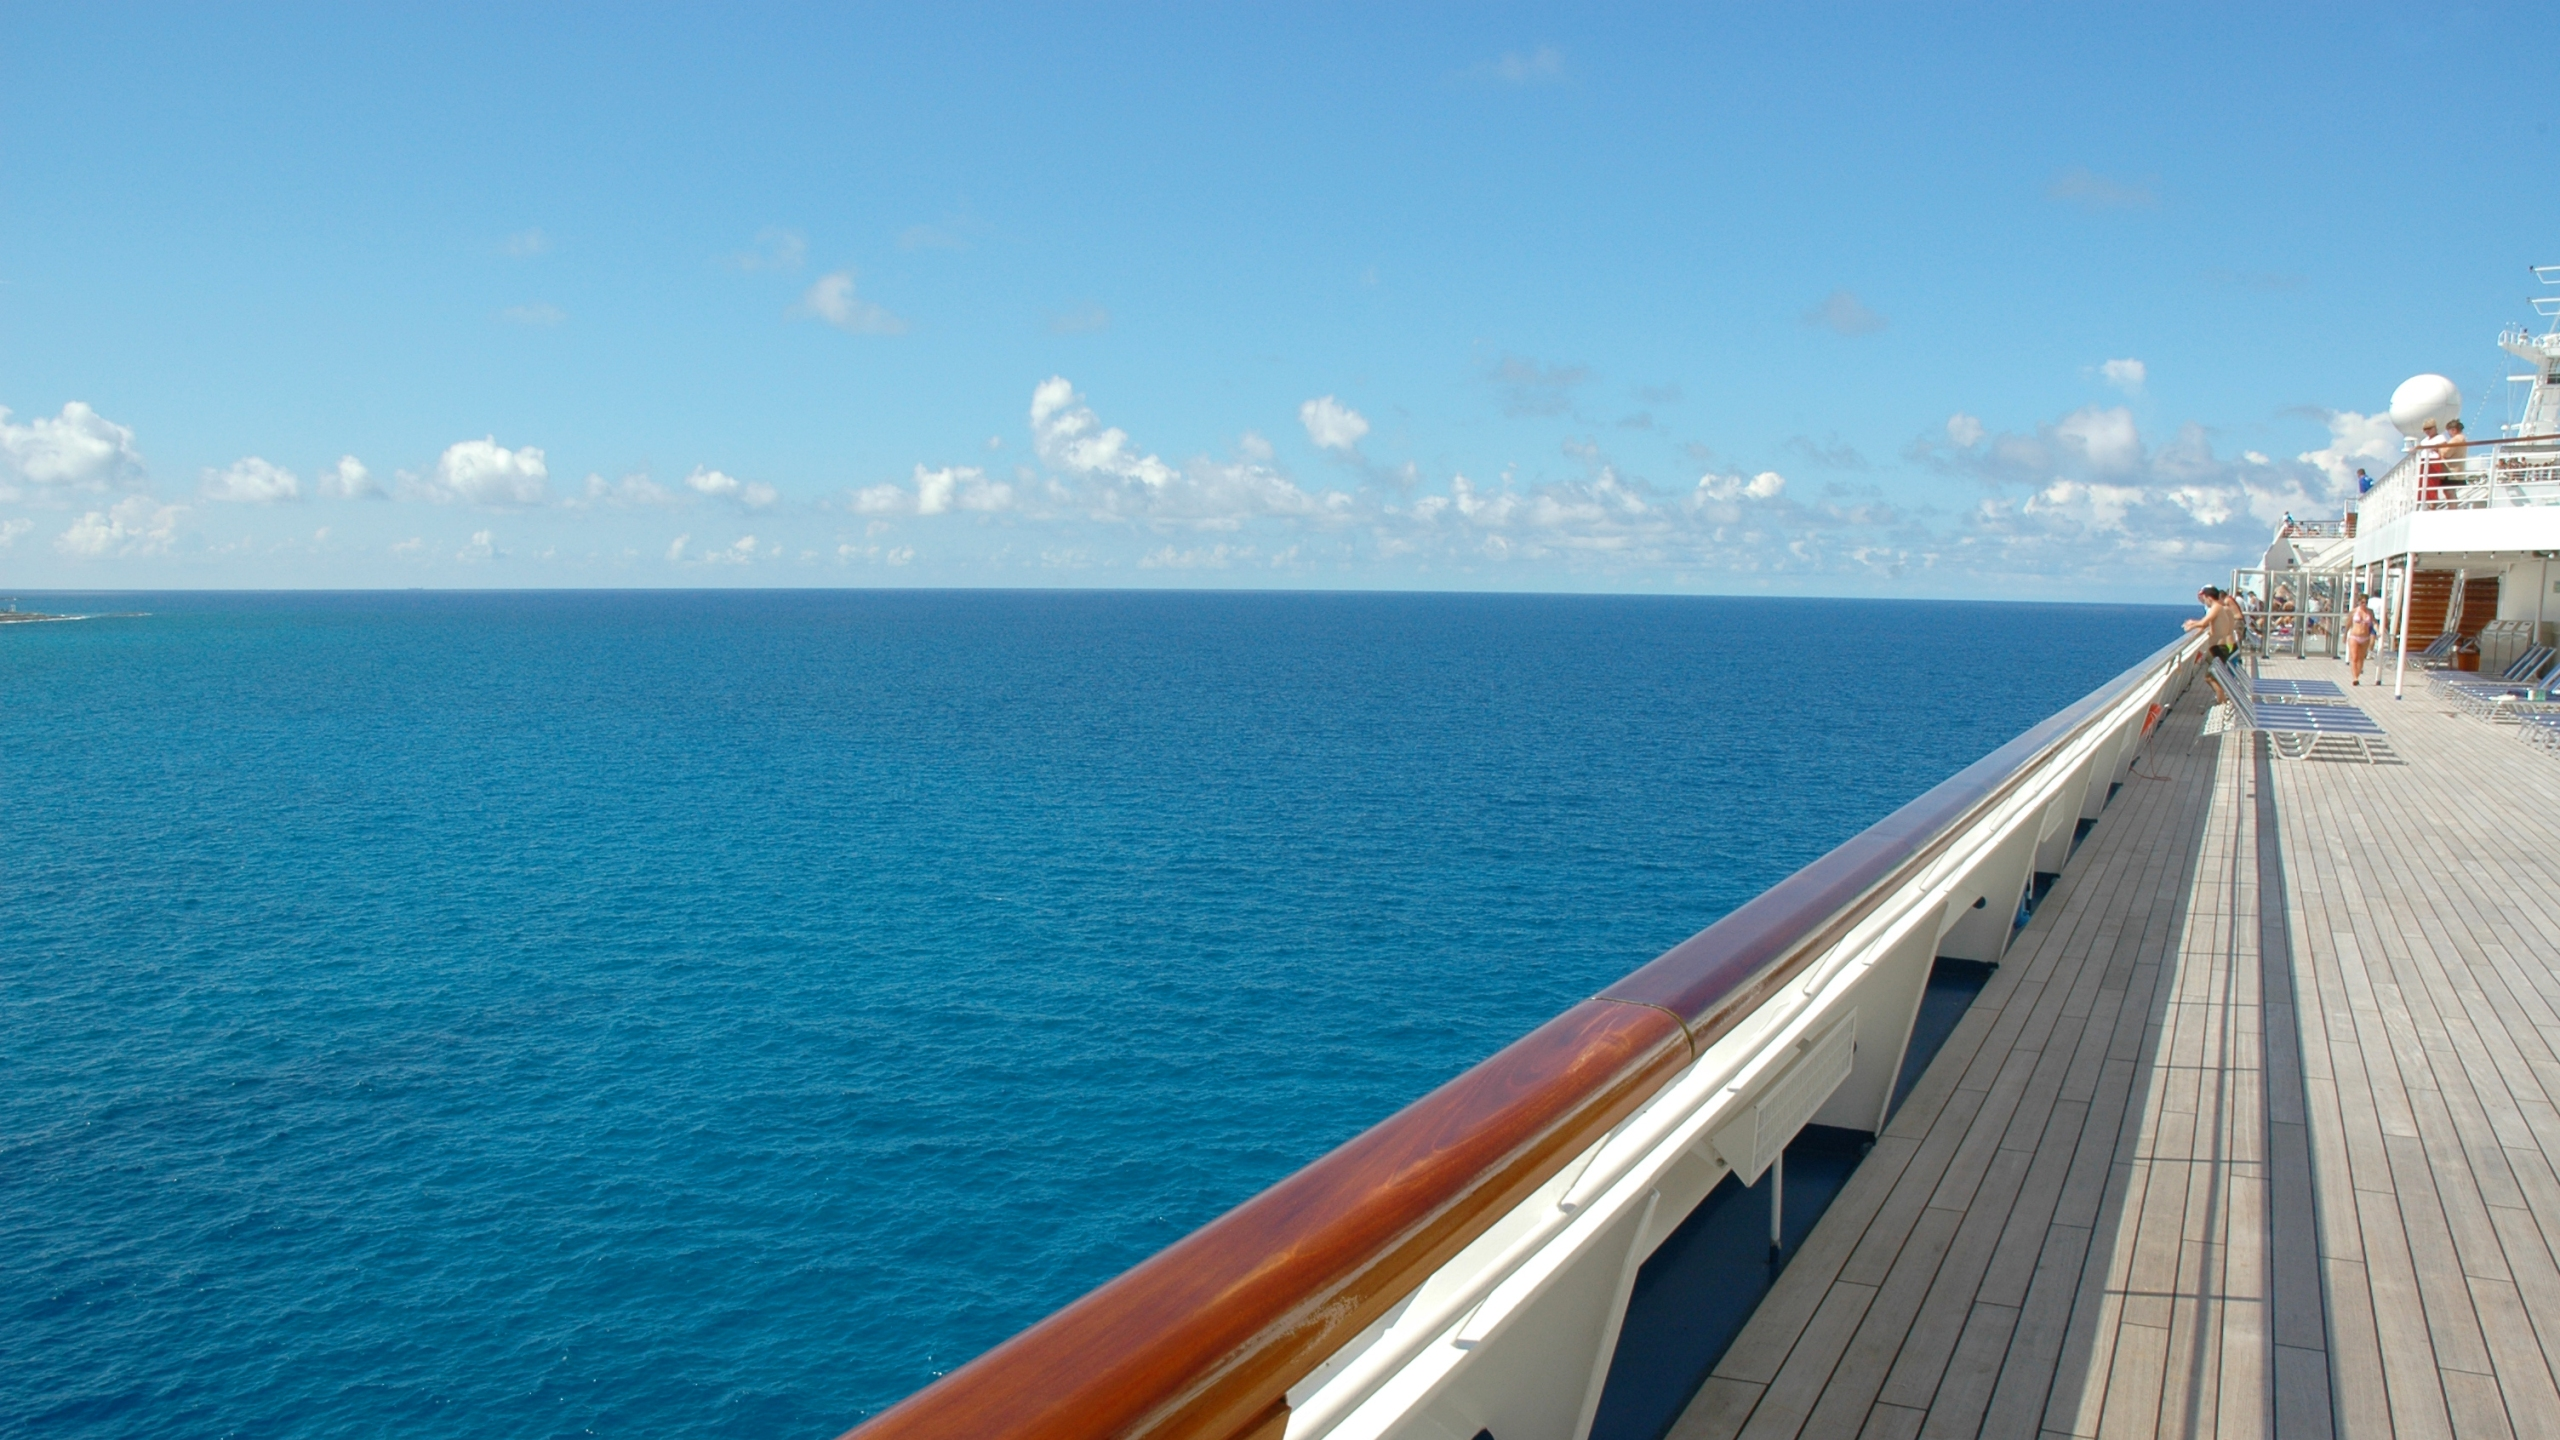 A cruise ship deck is seen in a file photo. (iStock/Getty Images Plus)